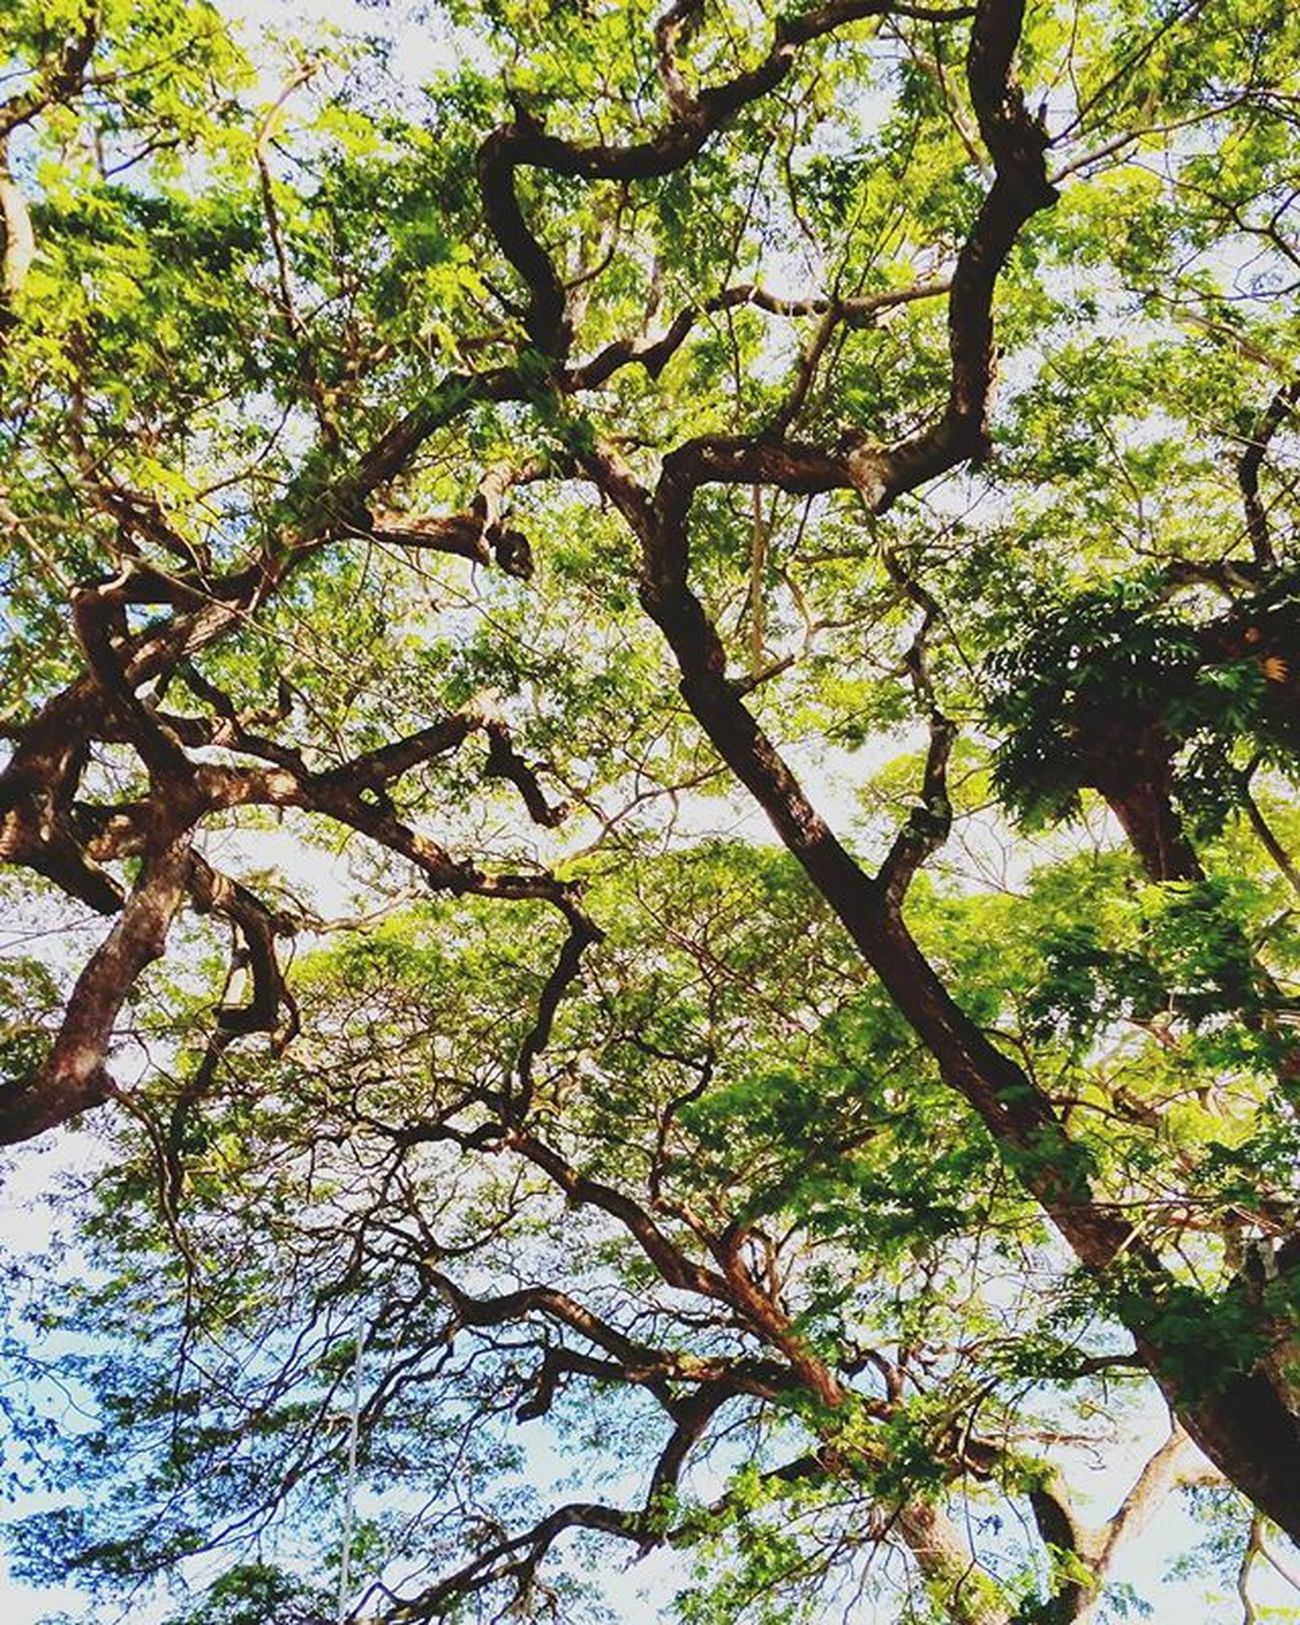 Trees Stems Gallefort Randomcapture Randomactsofkindness Awesome Tagsforlikes Likes4likes Likeforlike Instaday Instapic Instatravel